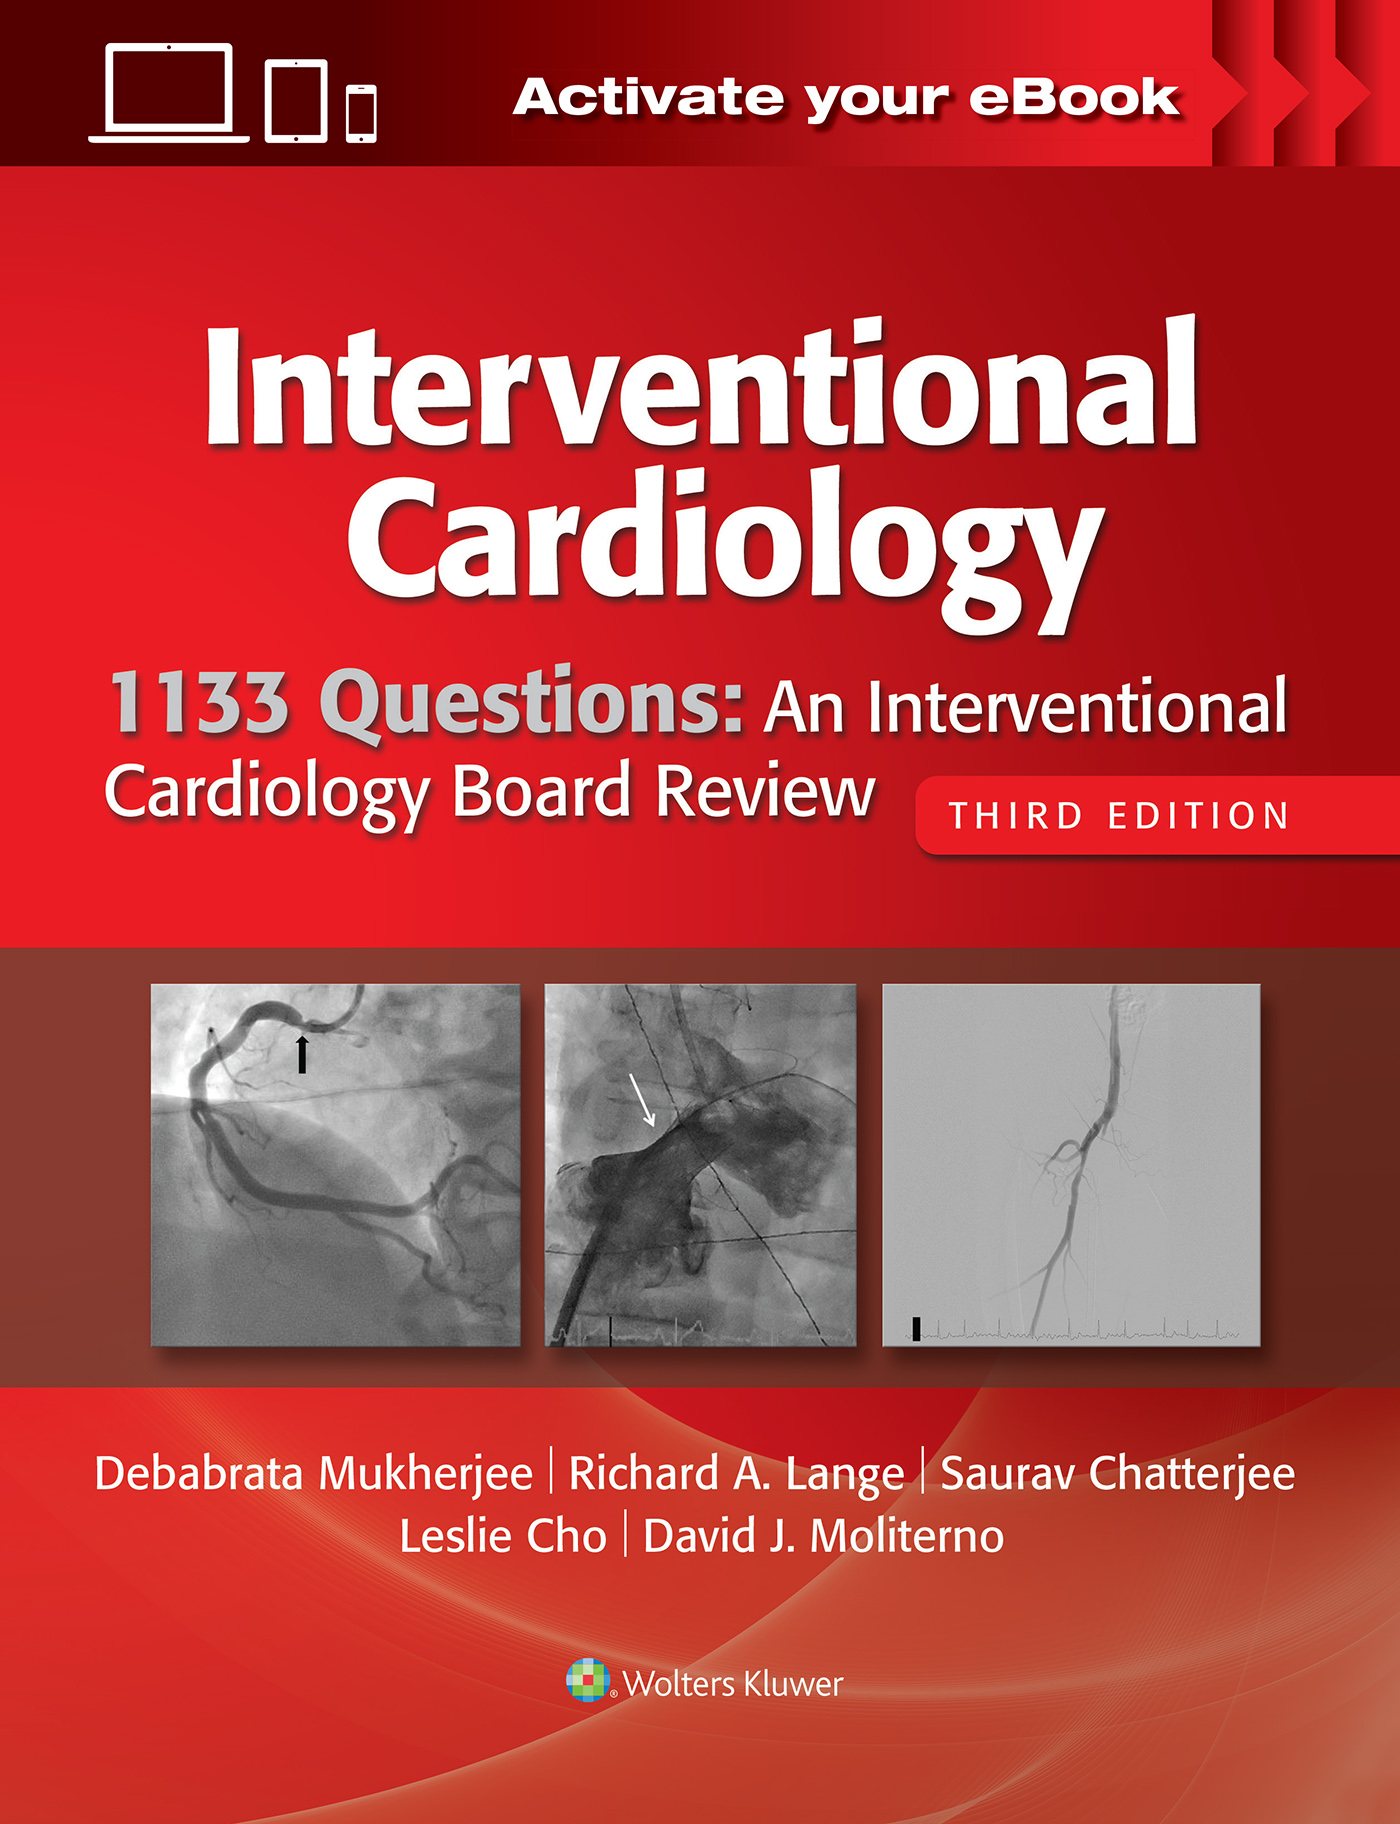 133 Questions: An Interventional Cardiology Board Review